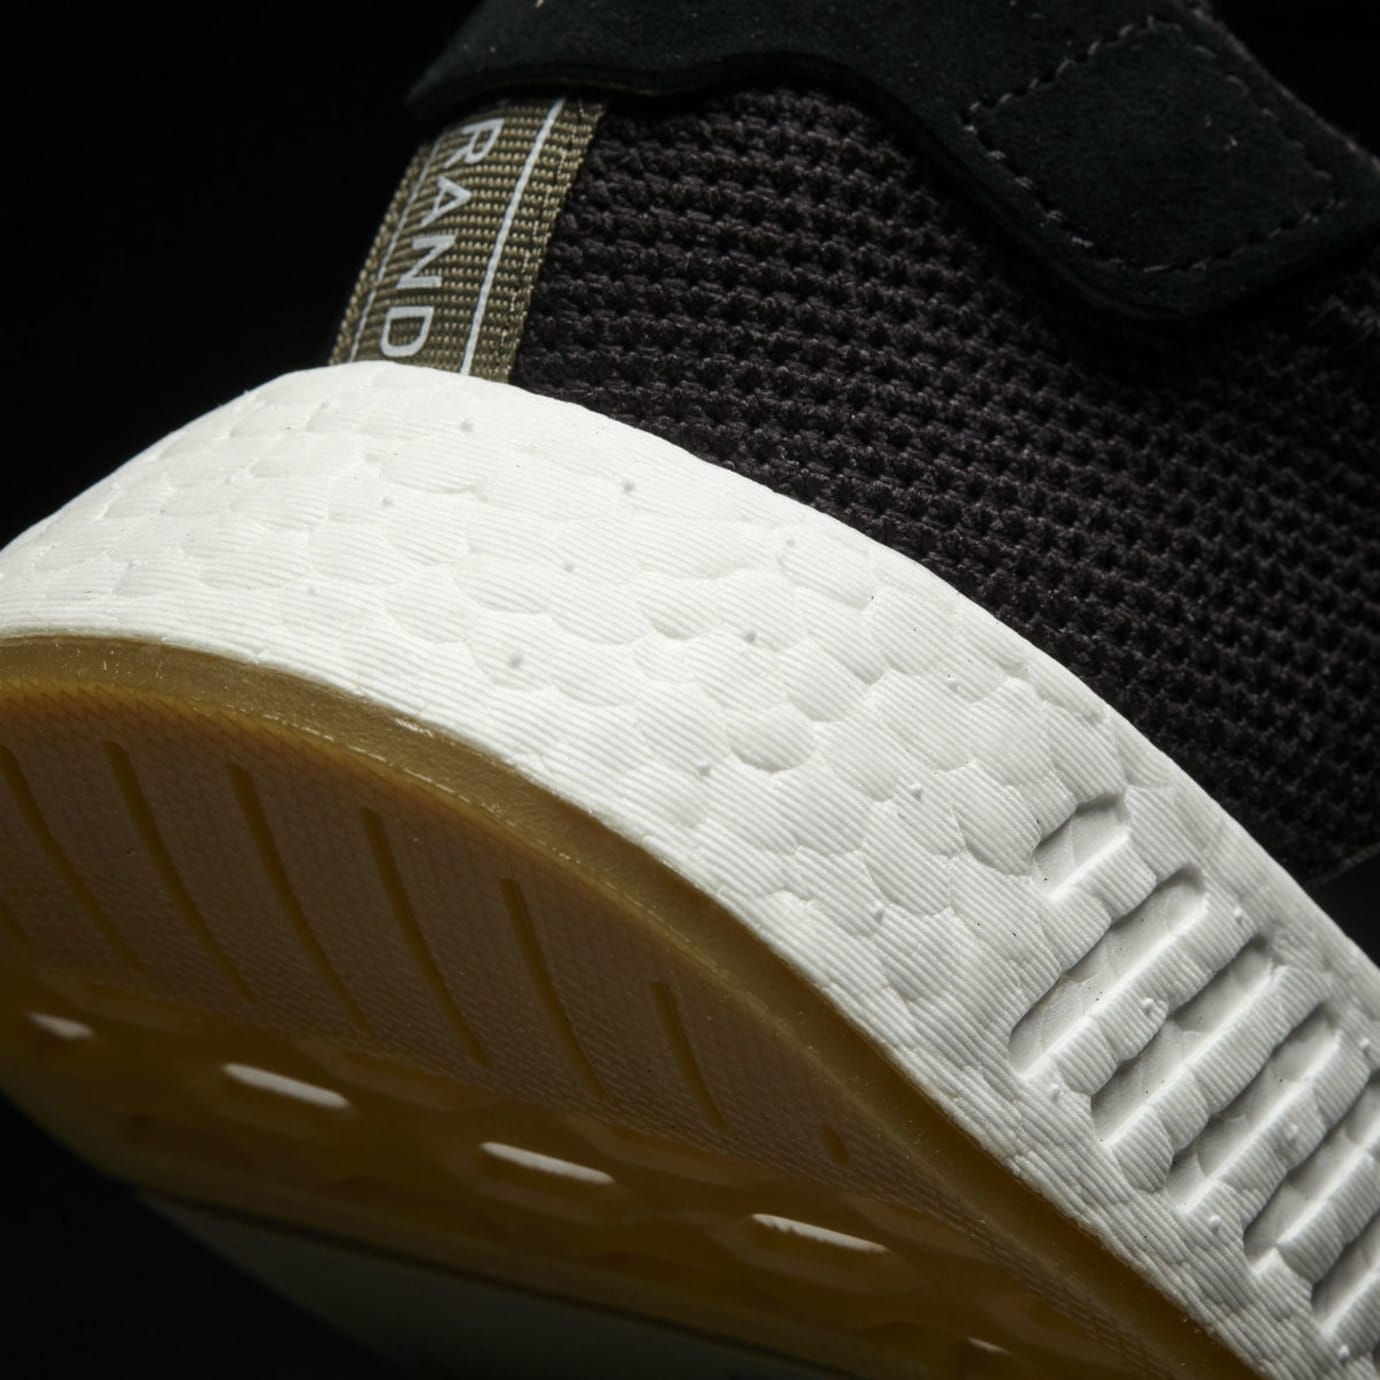 24fd0556896 Adidas NMD_R2 Black Gum Release Date BY9917 | Sole Collector